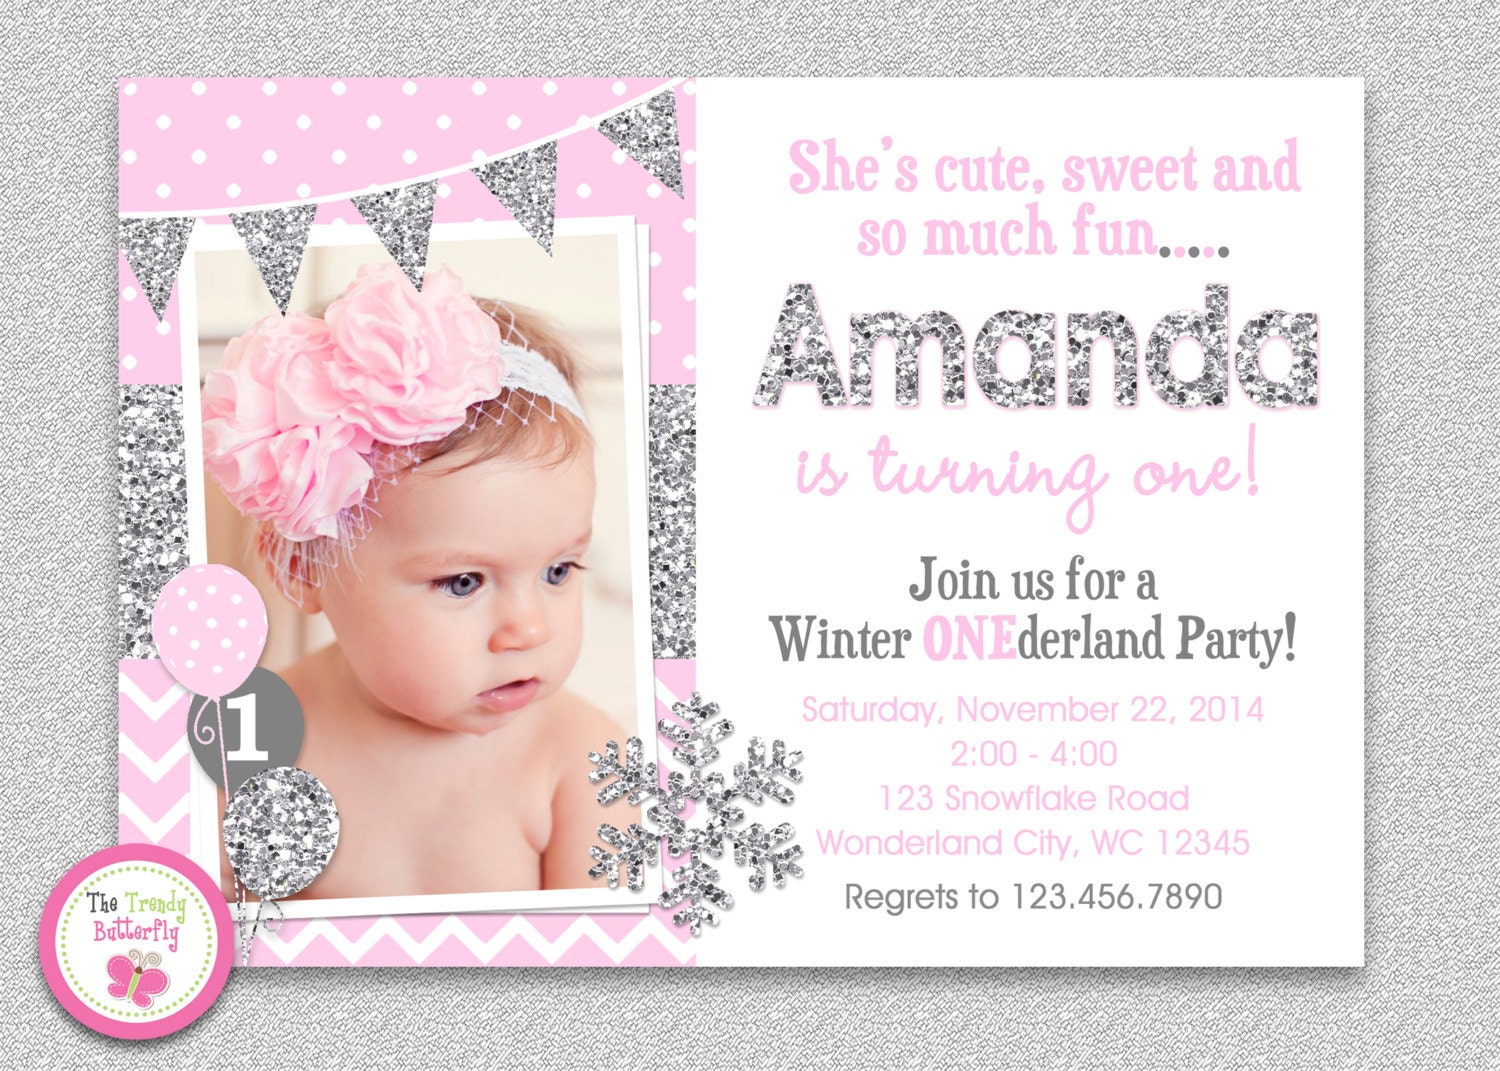 winter one derland birthday invitations radiotodorock.tk